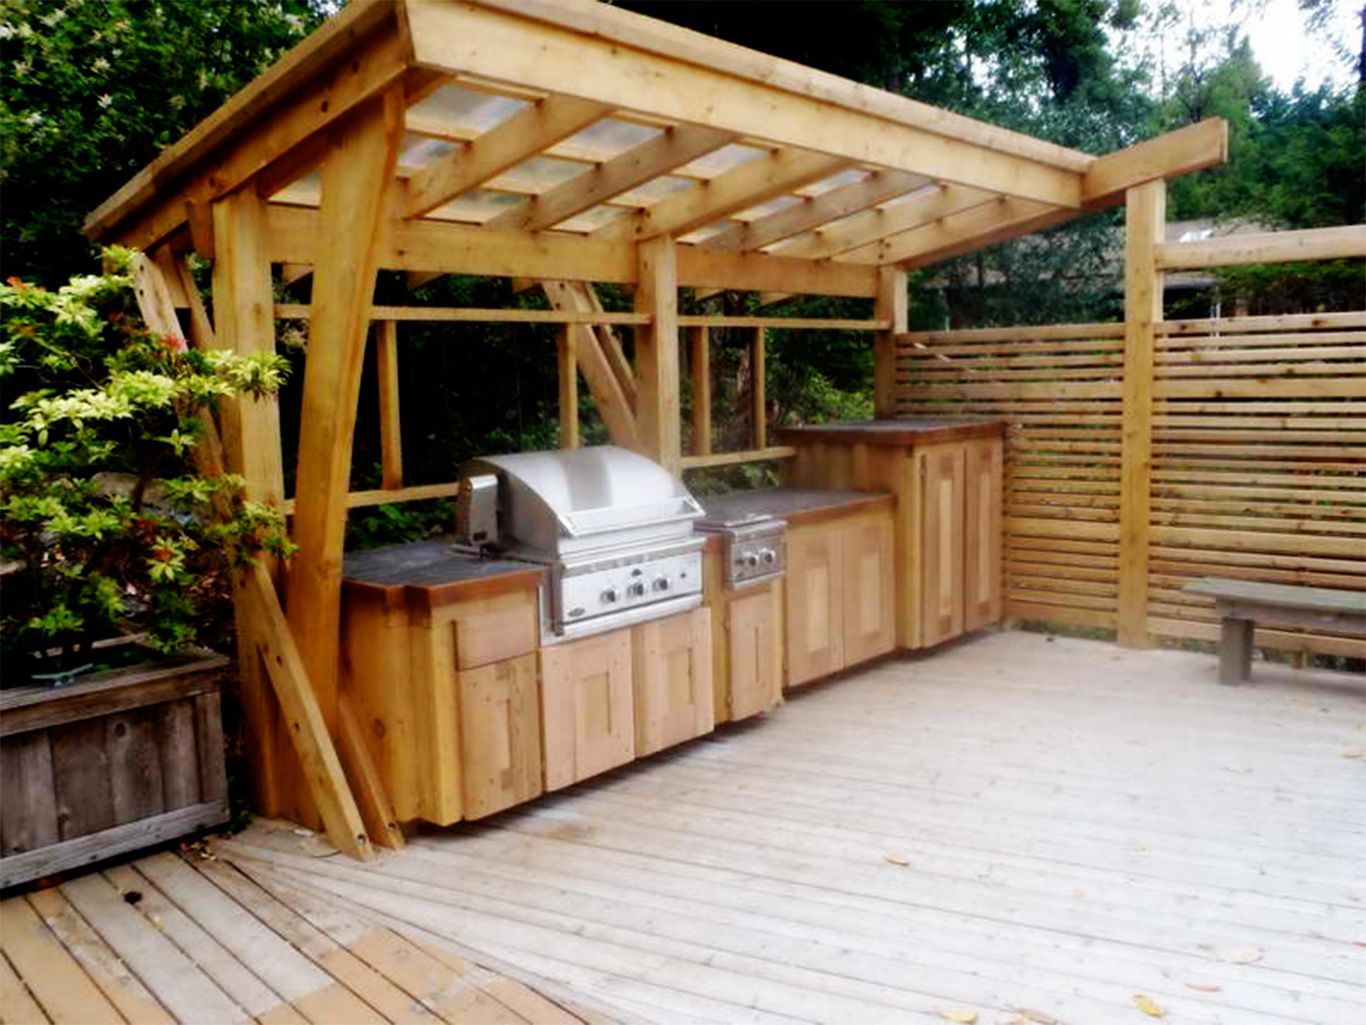 Outdoor Roof outdoor roof ideas | outdoor kitchen roof design gazebo designs